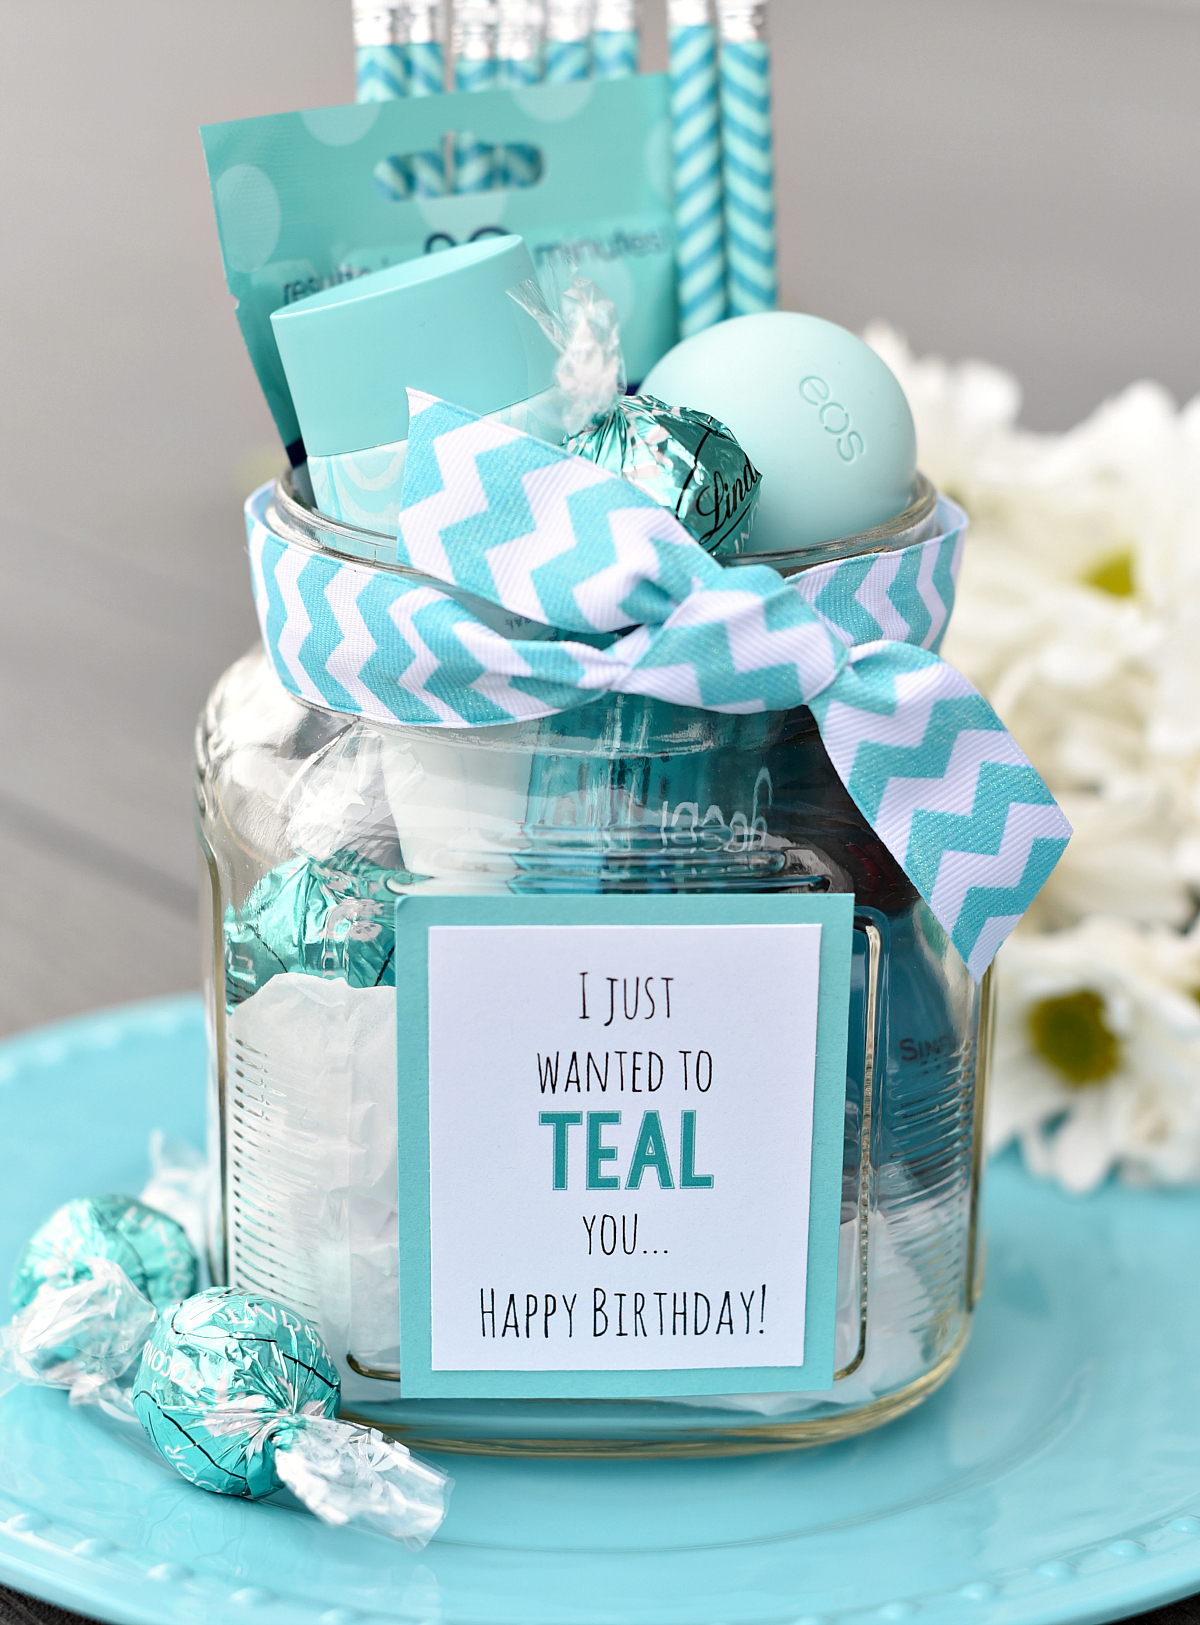 Fill Up A Jar Or Basket Bag With All Sorts Of Teal Colored Things And Add This Cute Gift Tag That Says I Just Want To You Happy Birthday